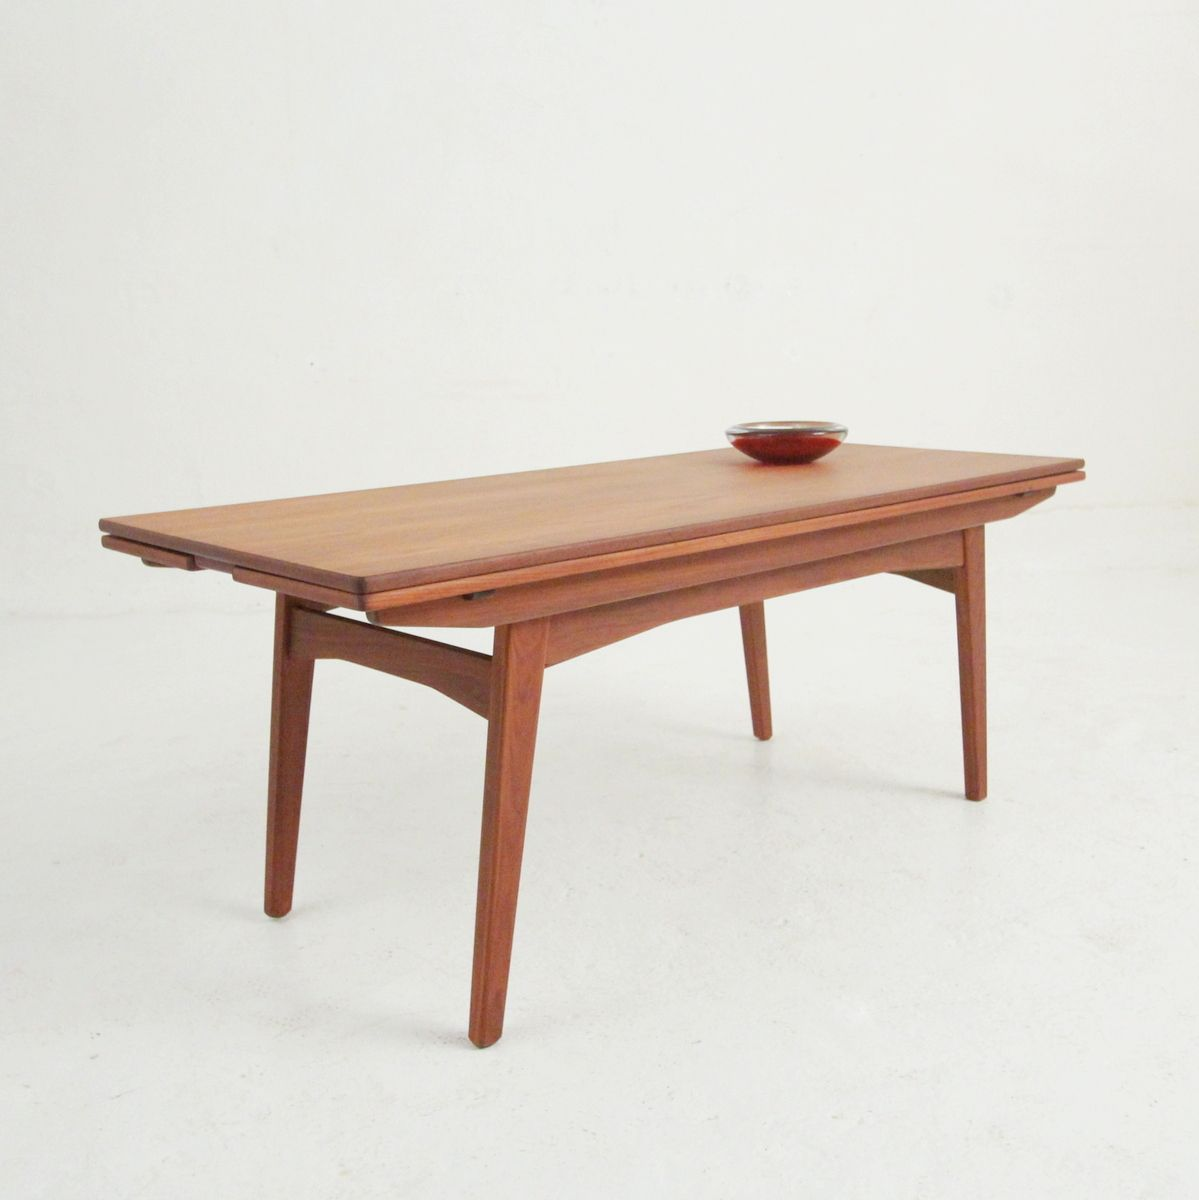 Teak copenhagen table 1960s for sale at pamono for T table for 99